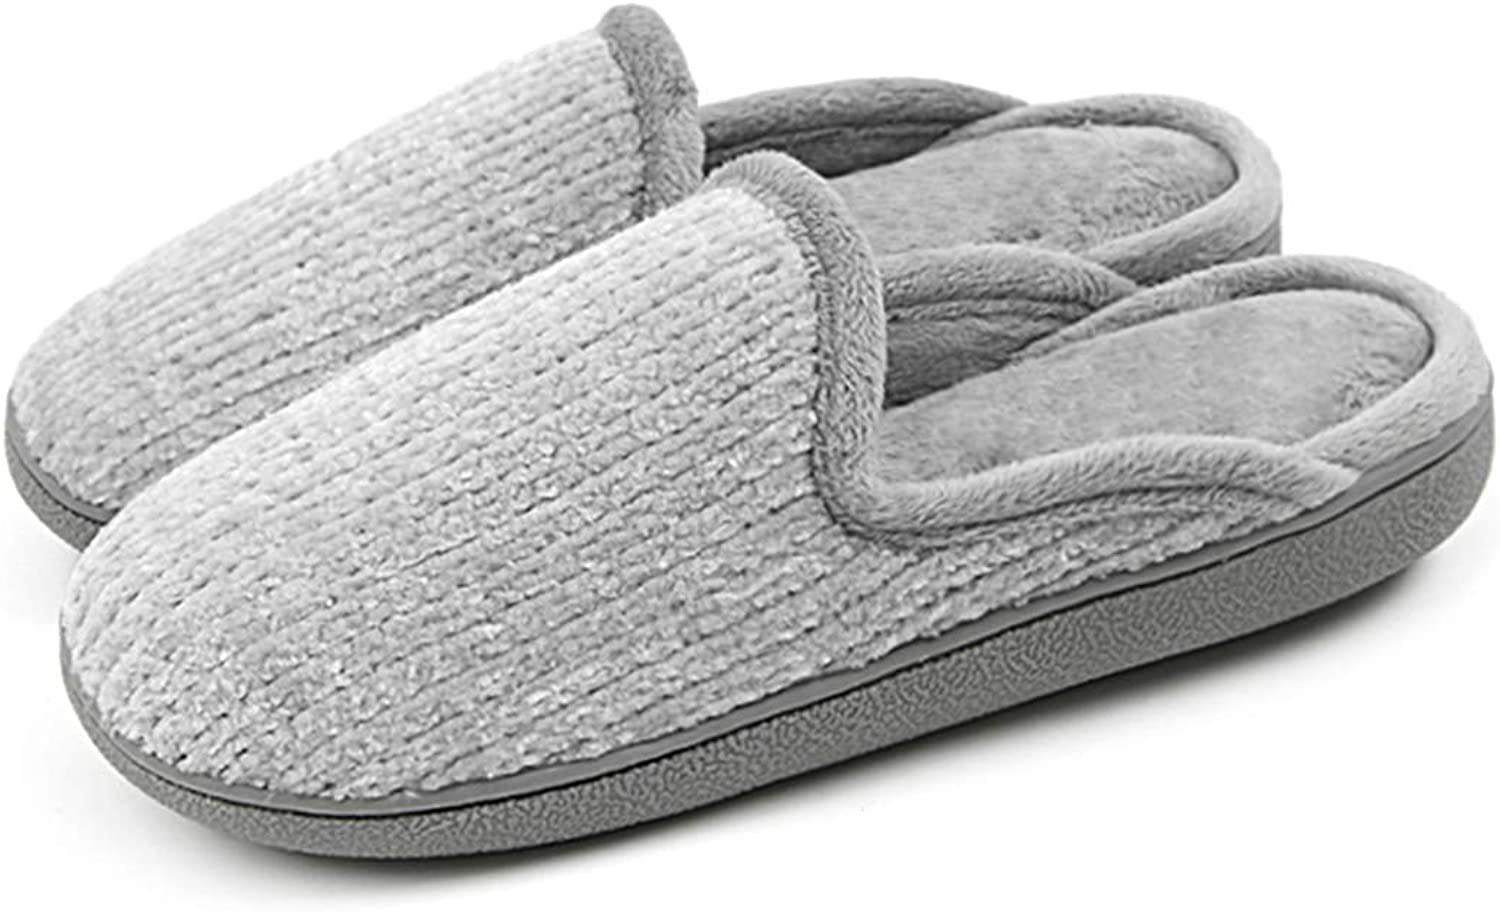 DoreenDory Women Cozy Plush Fleece Home Slippers Non-Slip Soft Sole Indoor House shoes